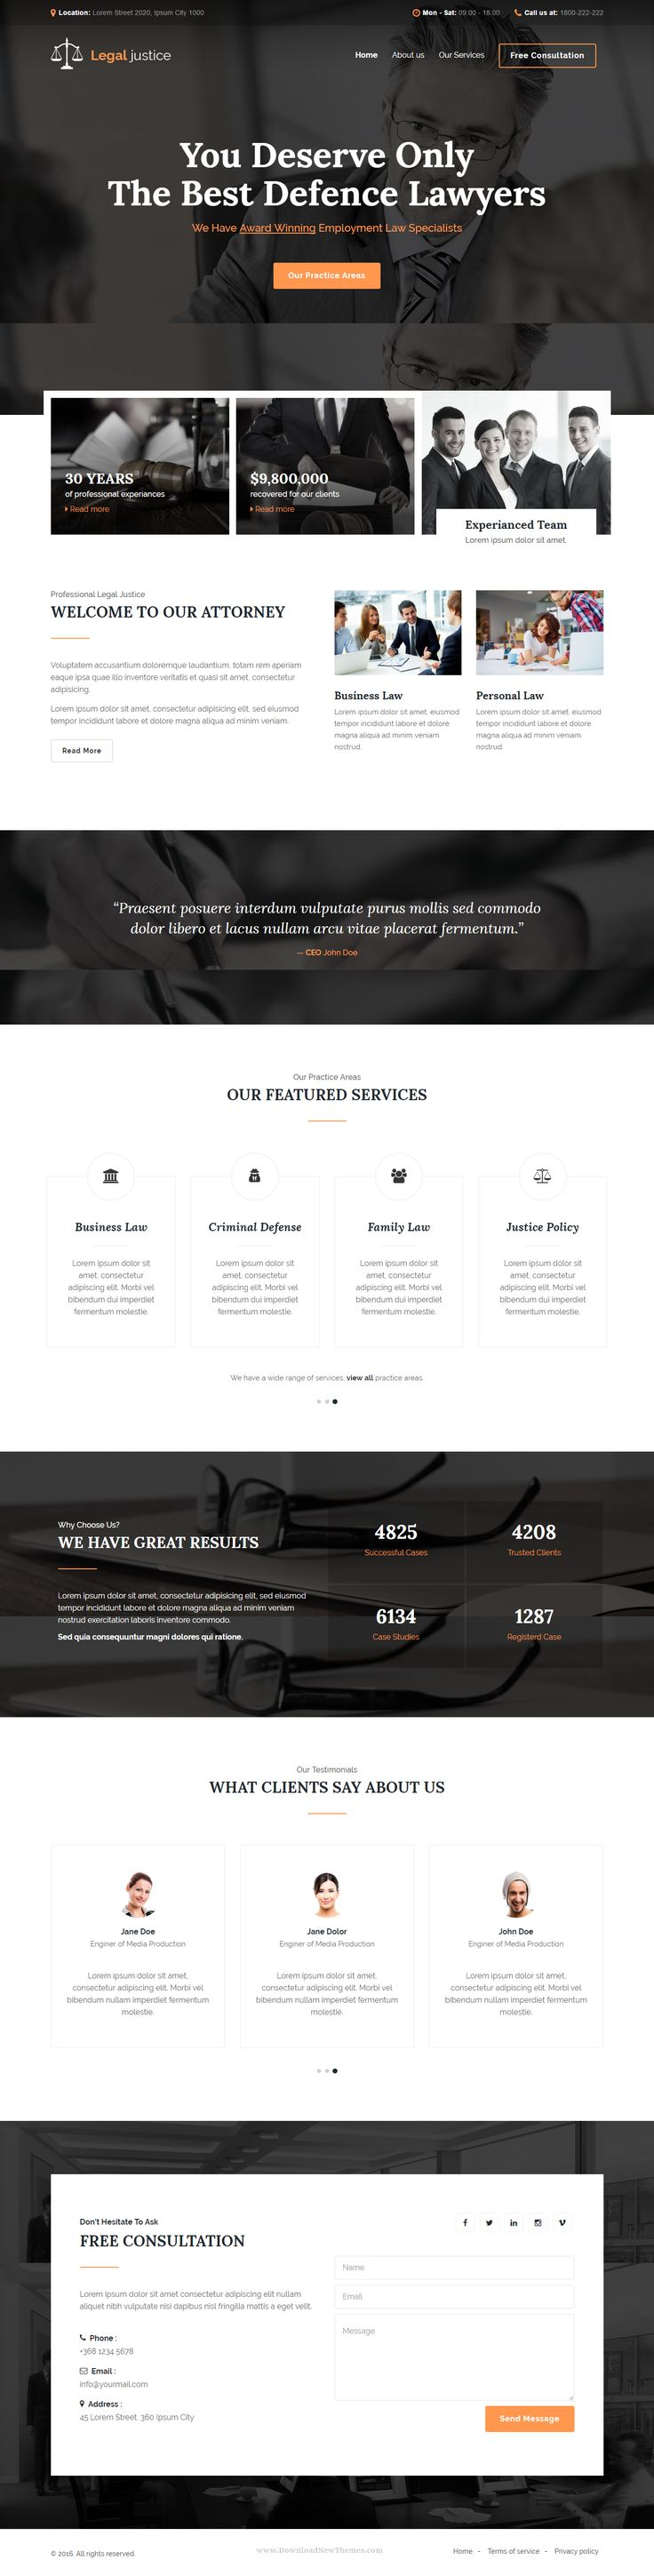 Legal justice is a stunning HTML5 Template – to make the best impression on current and future clients. It is perfect for #lawyers, law #firms, attorneys, consultants, legal corporations, legal Advisers, justice corporations, agents and for any legal and #law related businesses. #website